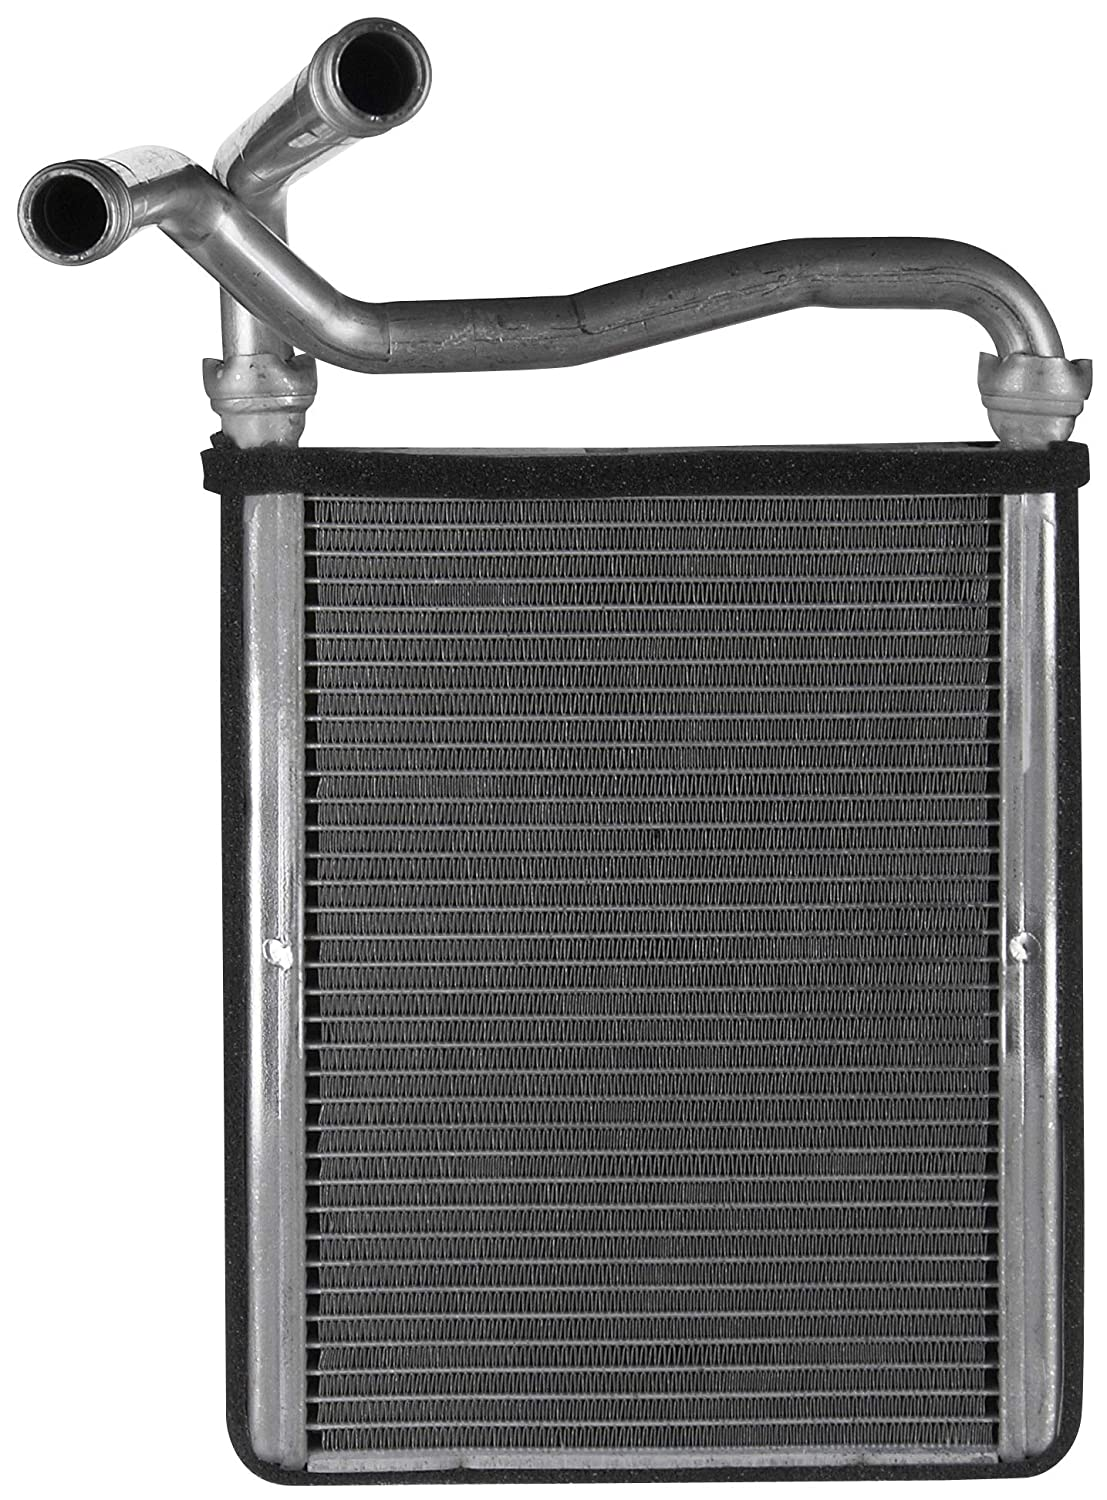 Spectra Premium 99317 Heater Core for Toyota Corolla/Matrix